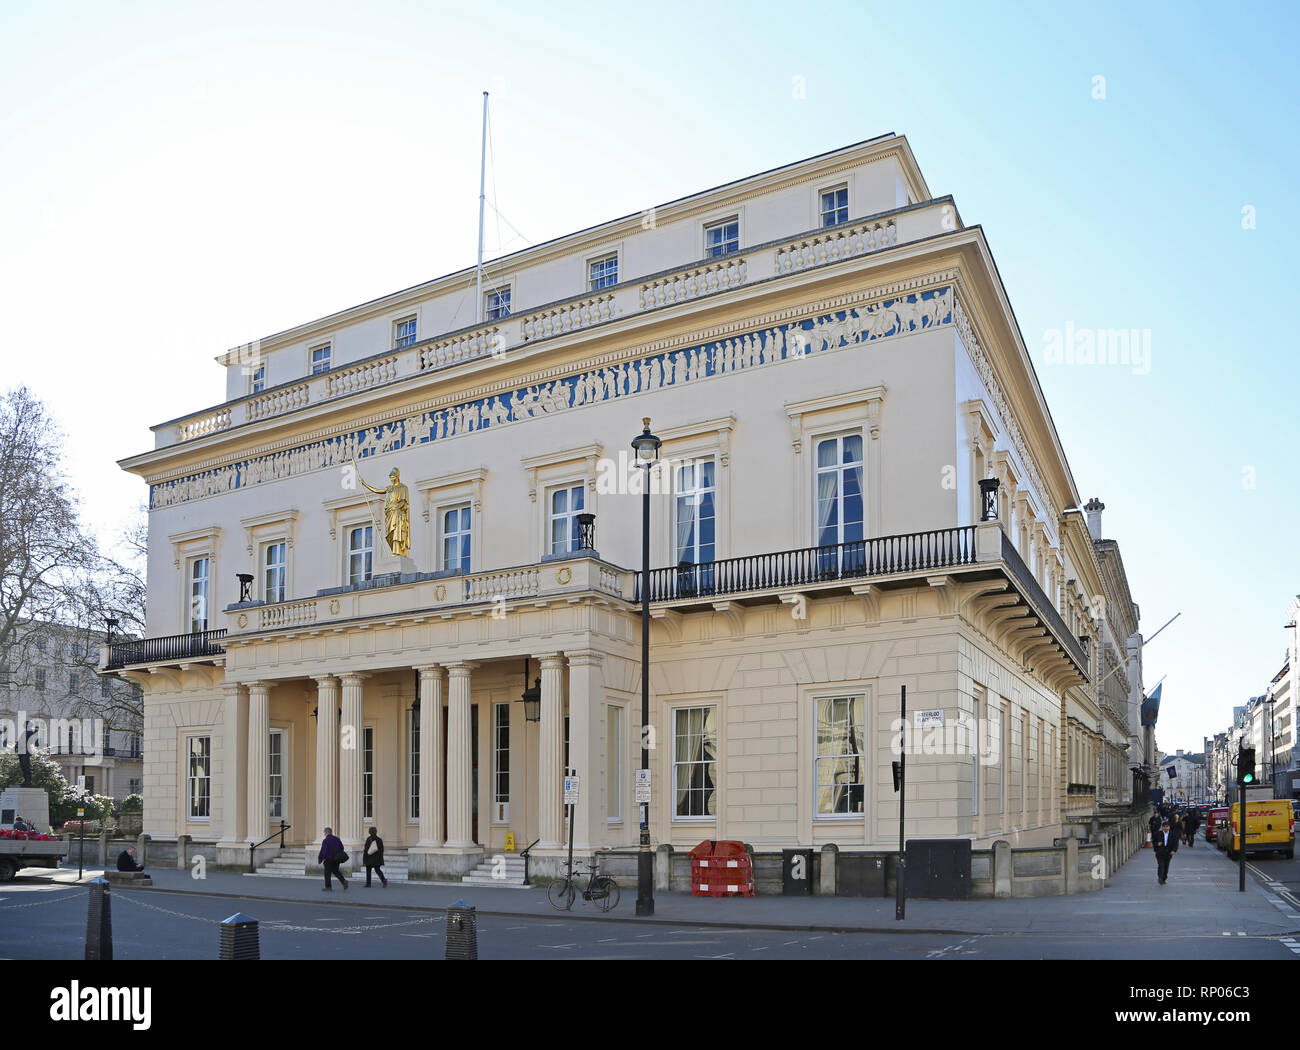 The Atheneum, an exclusive, private members club on Pall Mall, London, UK.Building designed by Decimus Burton - Stock Image